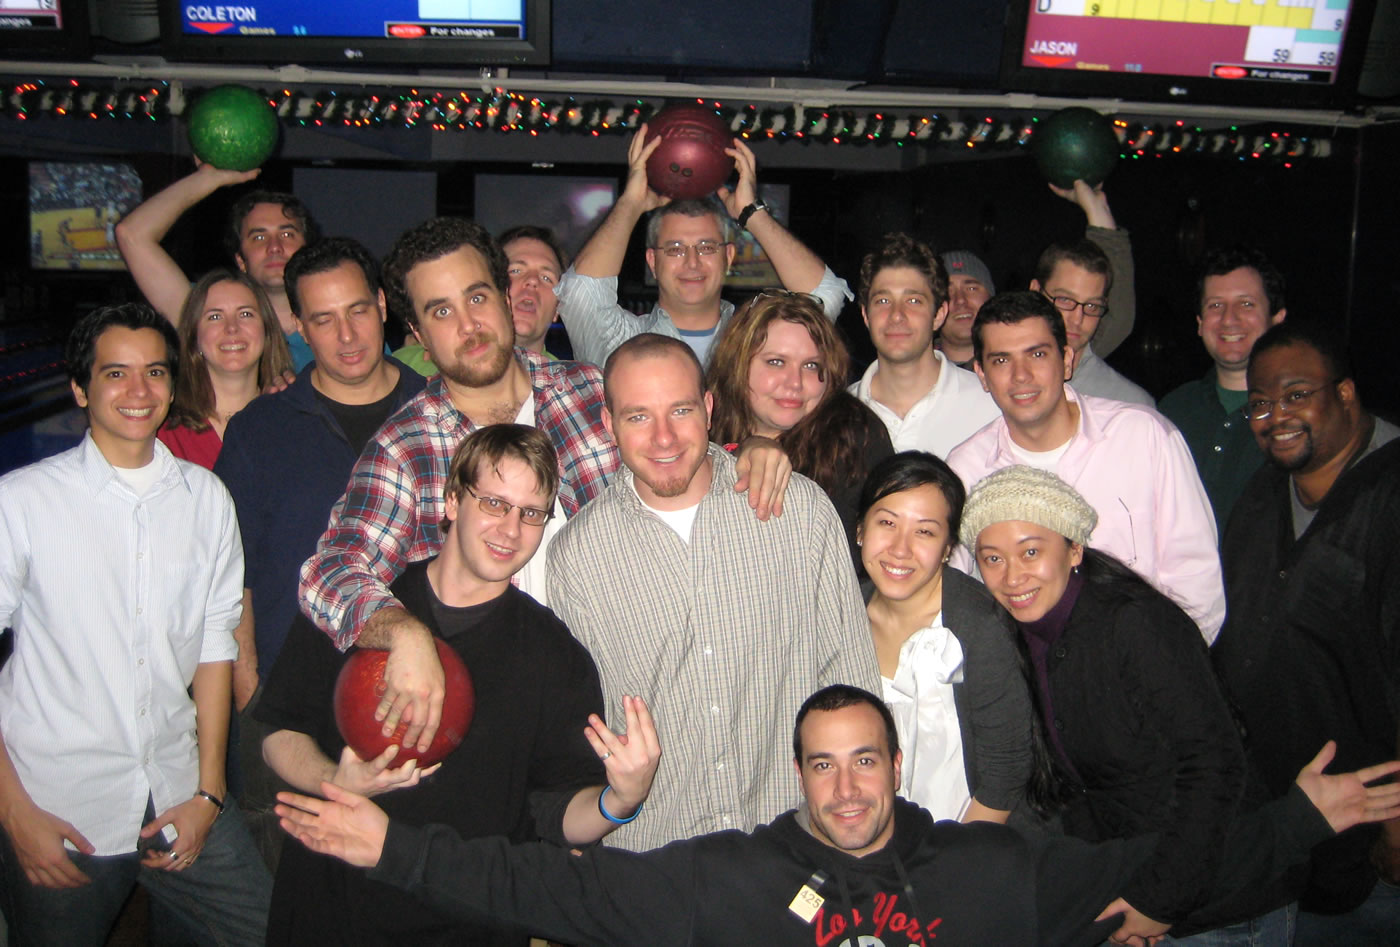 Ben Nadel with the Nylon Technology team, Christmas party!